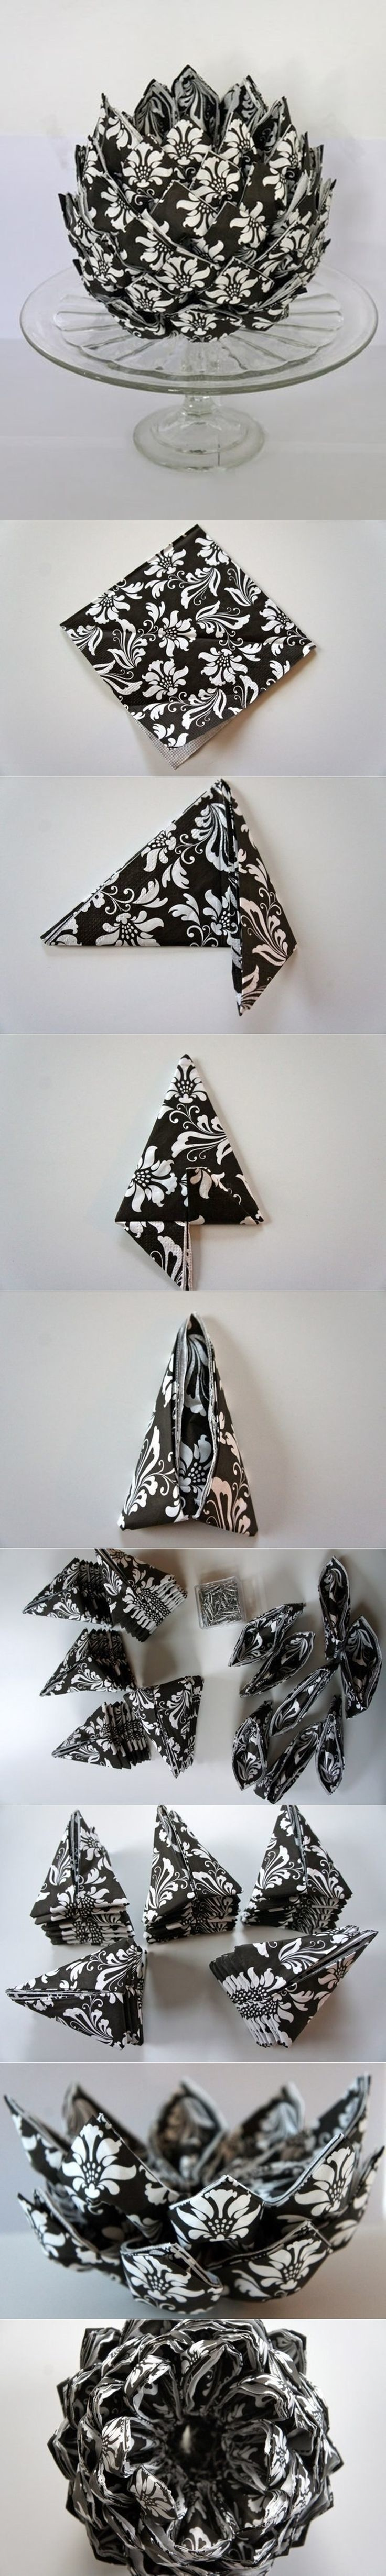 25 Napkin Folding Techniques That Will Transform Your Dinner Table